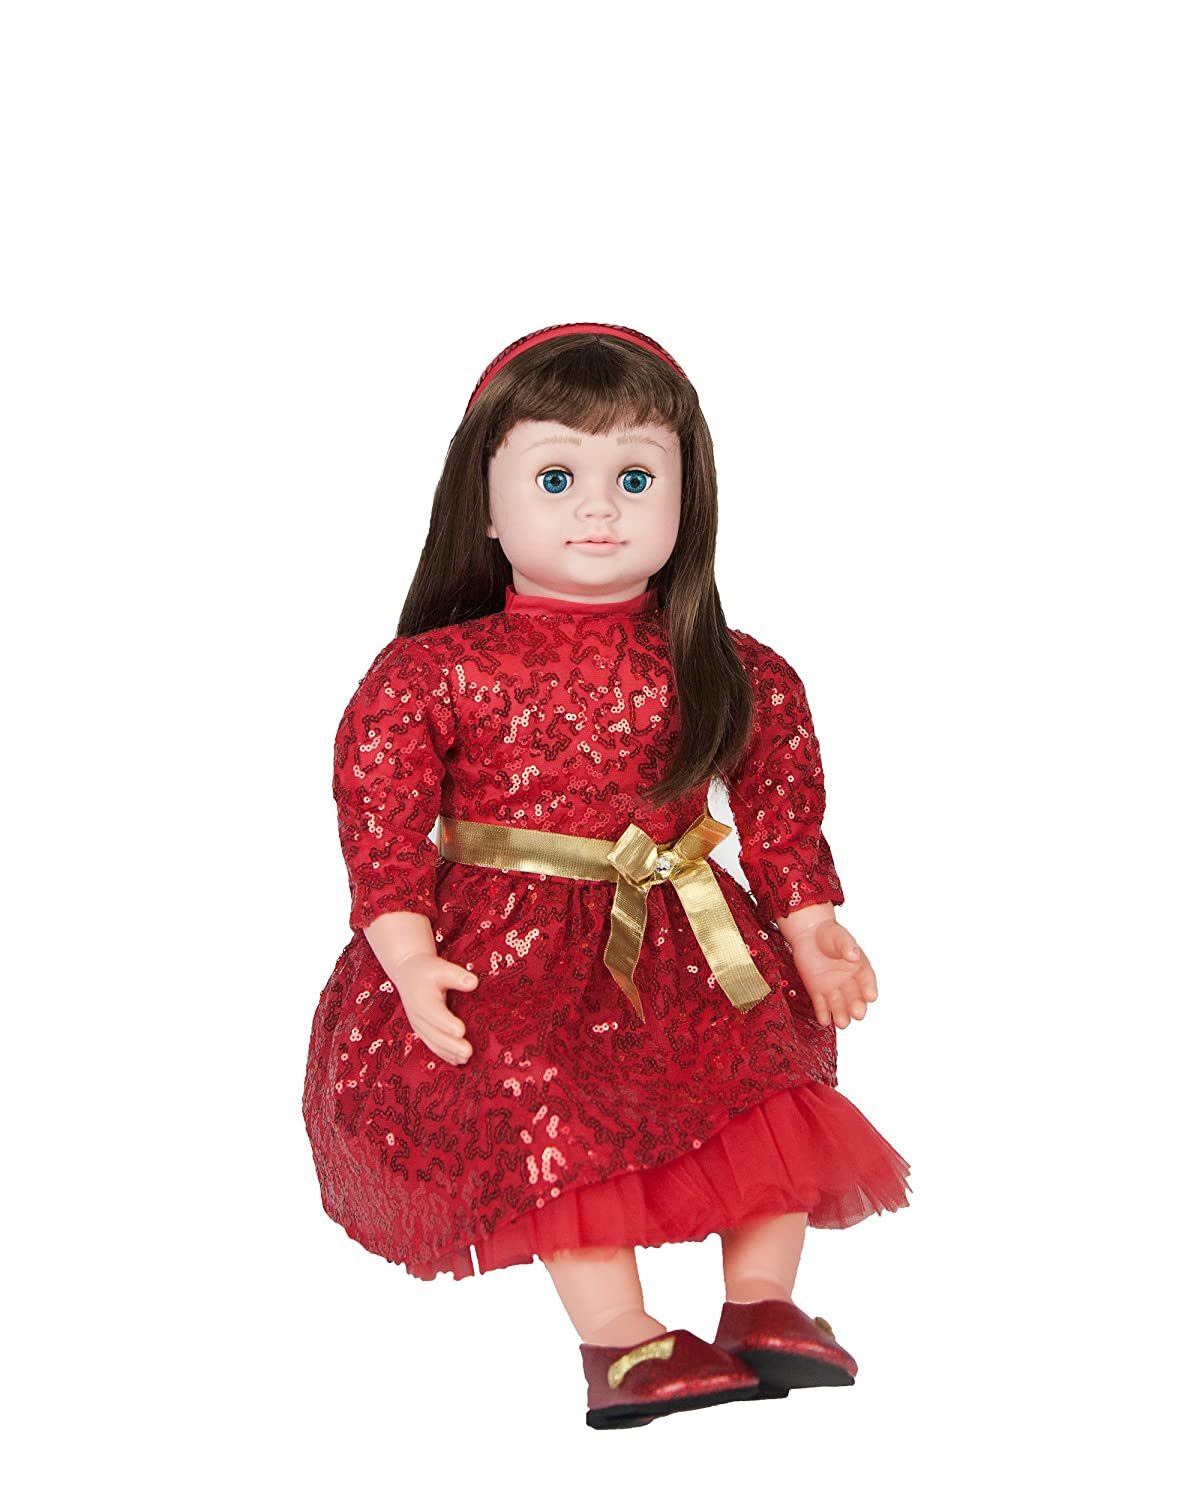 Ask Amy 22 Talking Interactive Singing Storytelling Smart Educational Doll Brunette Red Sparkles Dress World of Magic Toys